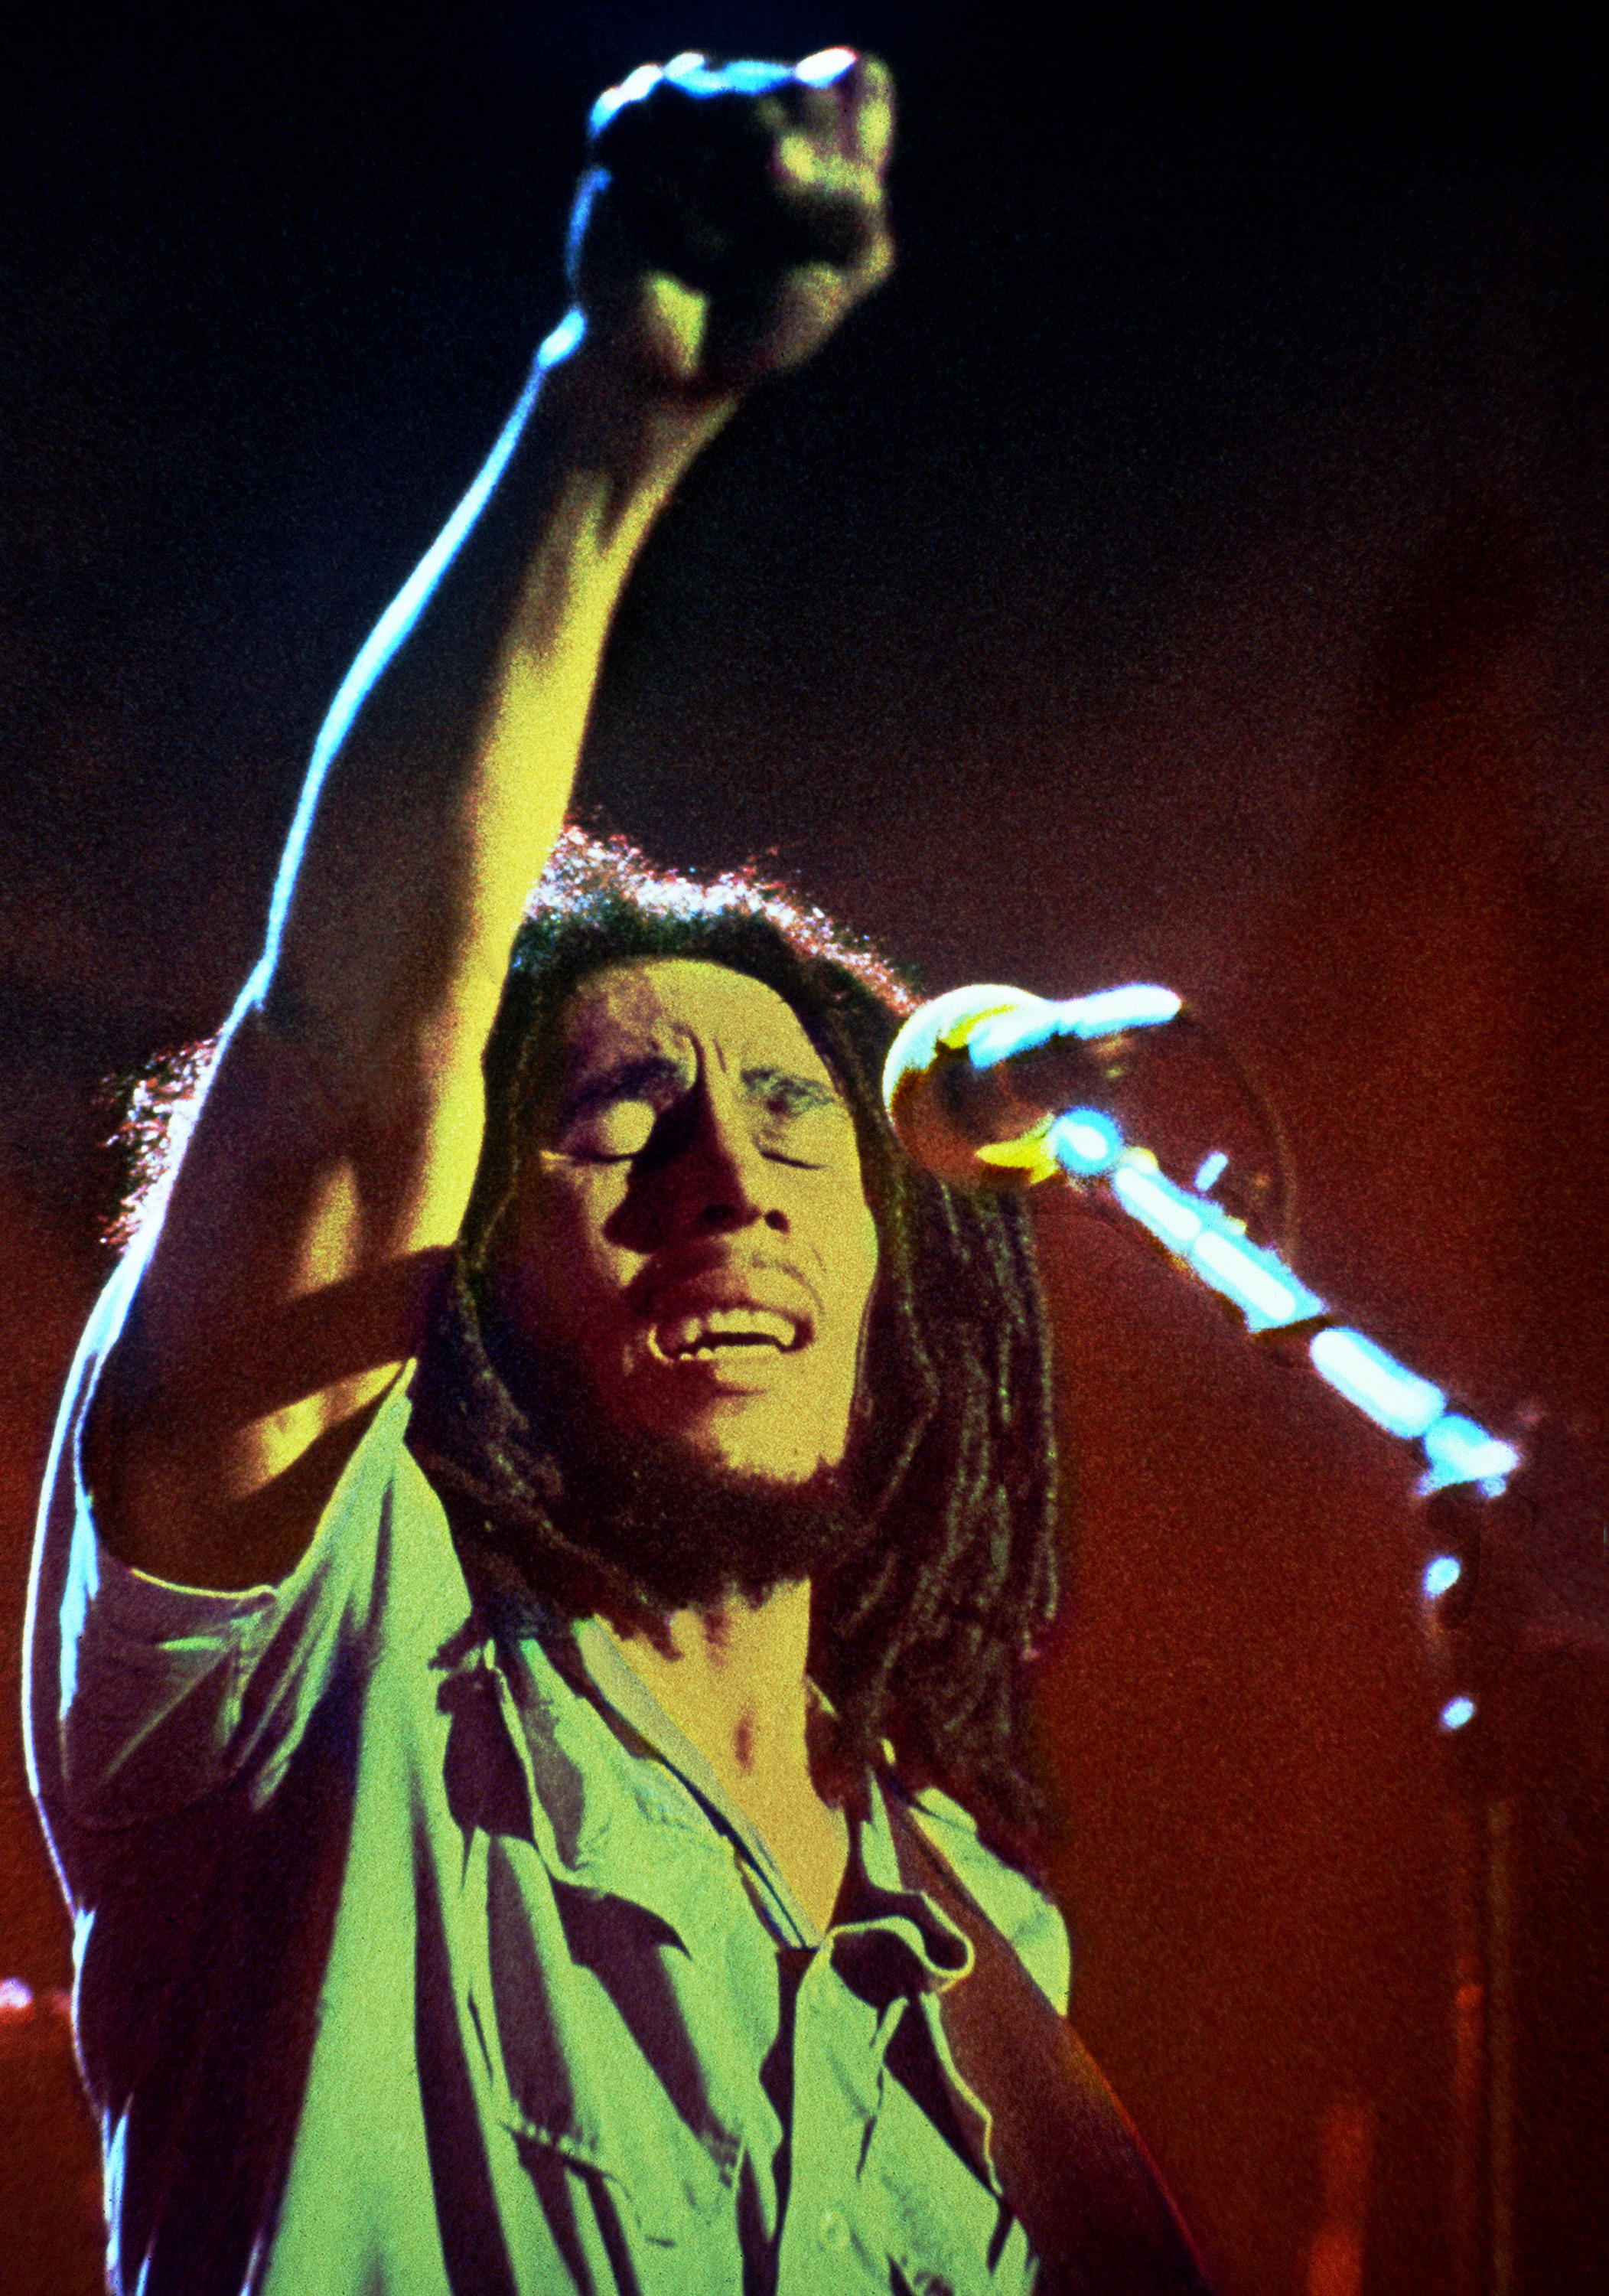 Bob Marley, Get Up, Stand Up! musical